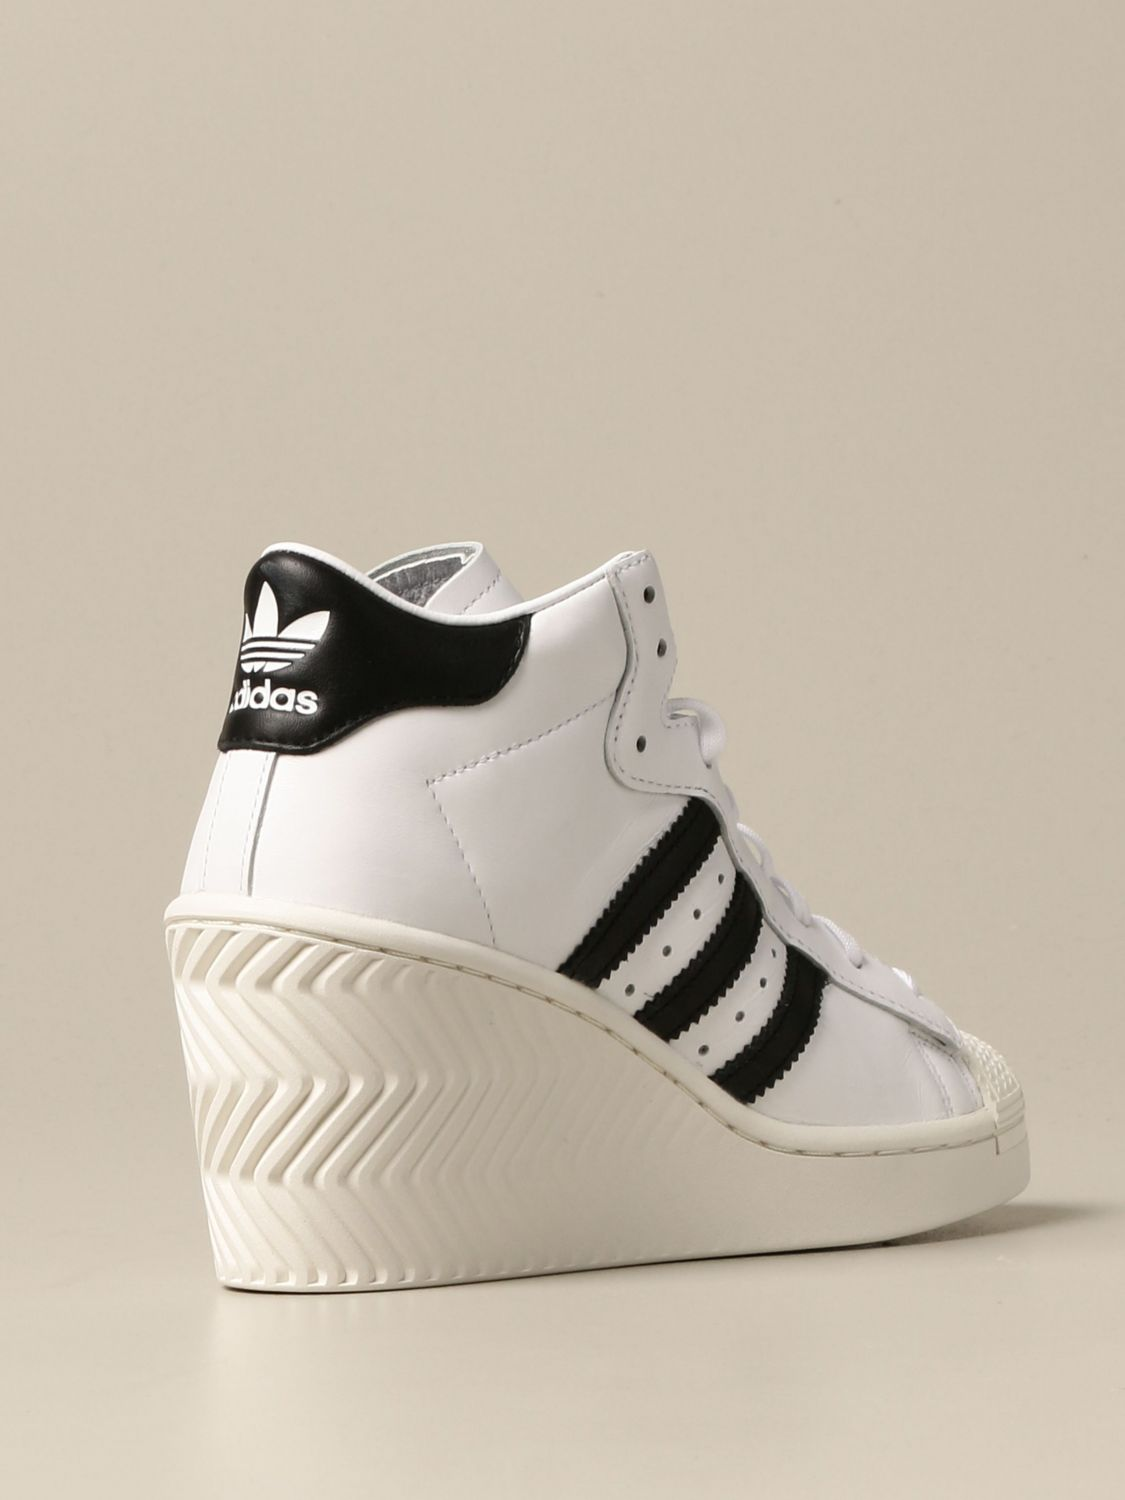 Adidas Originals Outlet: Superstar Ellure W sneakers in leather ...